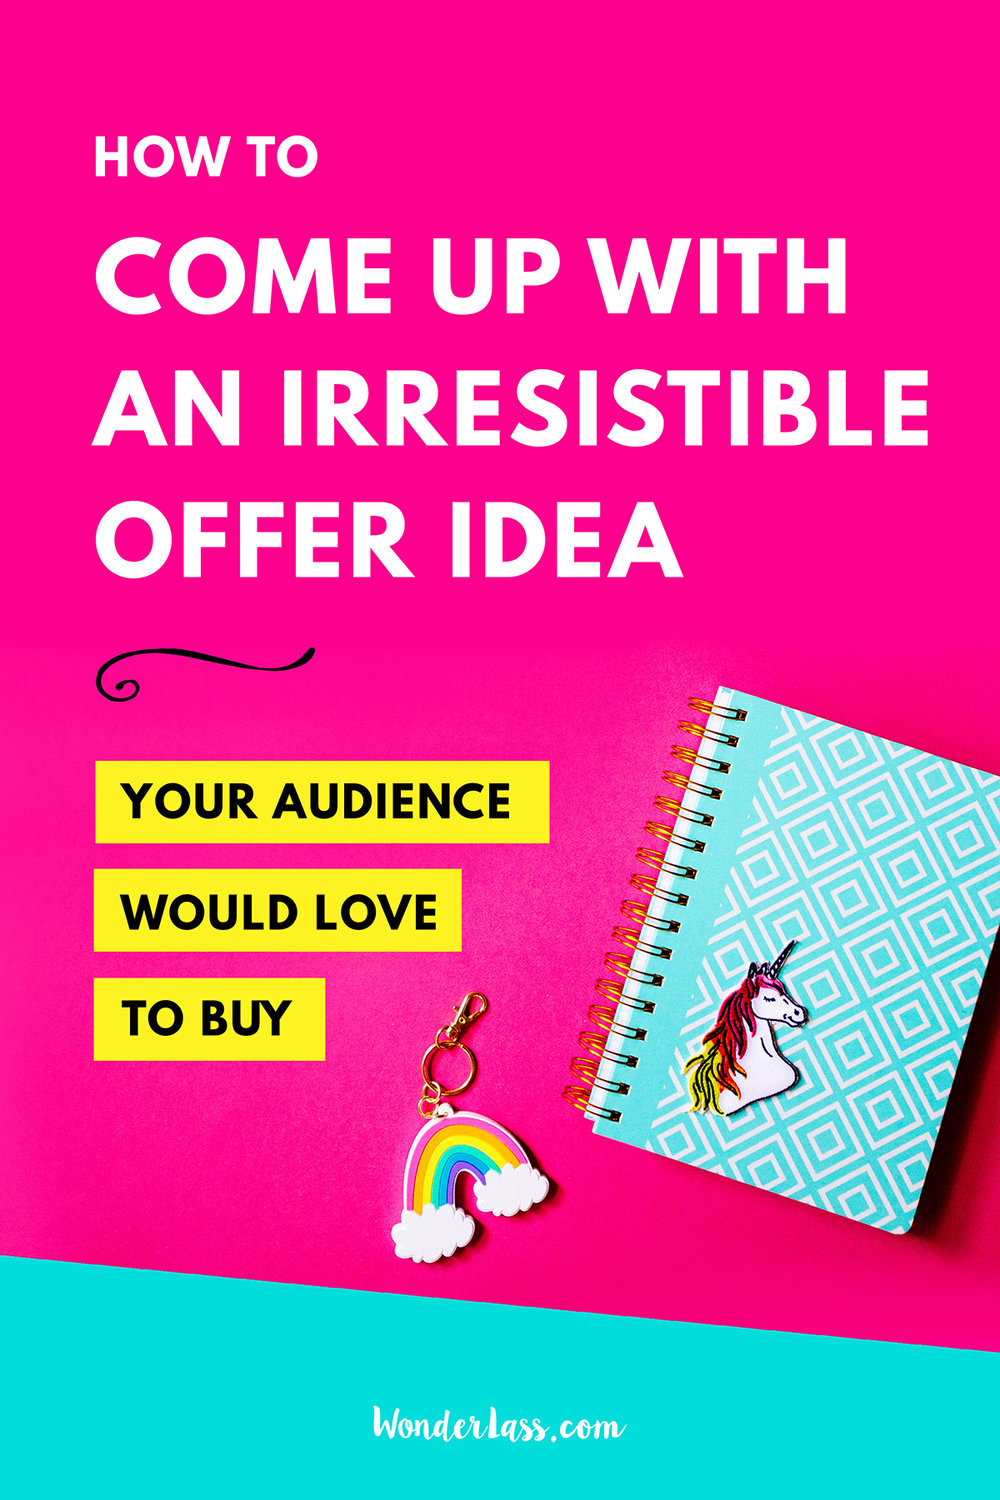 How to come up with an irresistible offer idea your audience would love to buy | Wonderlass